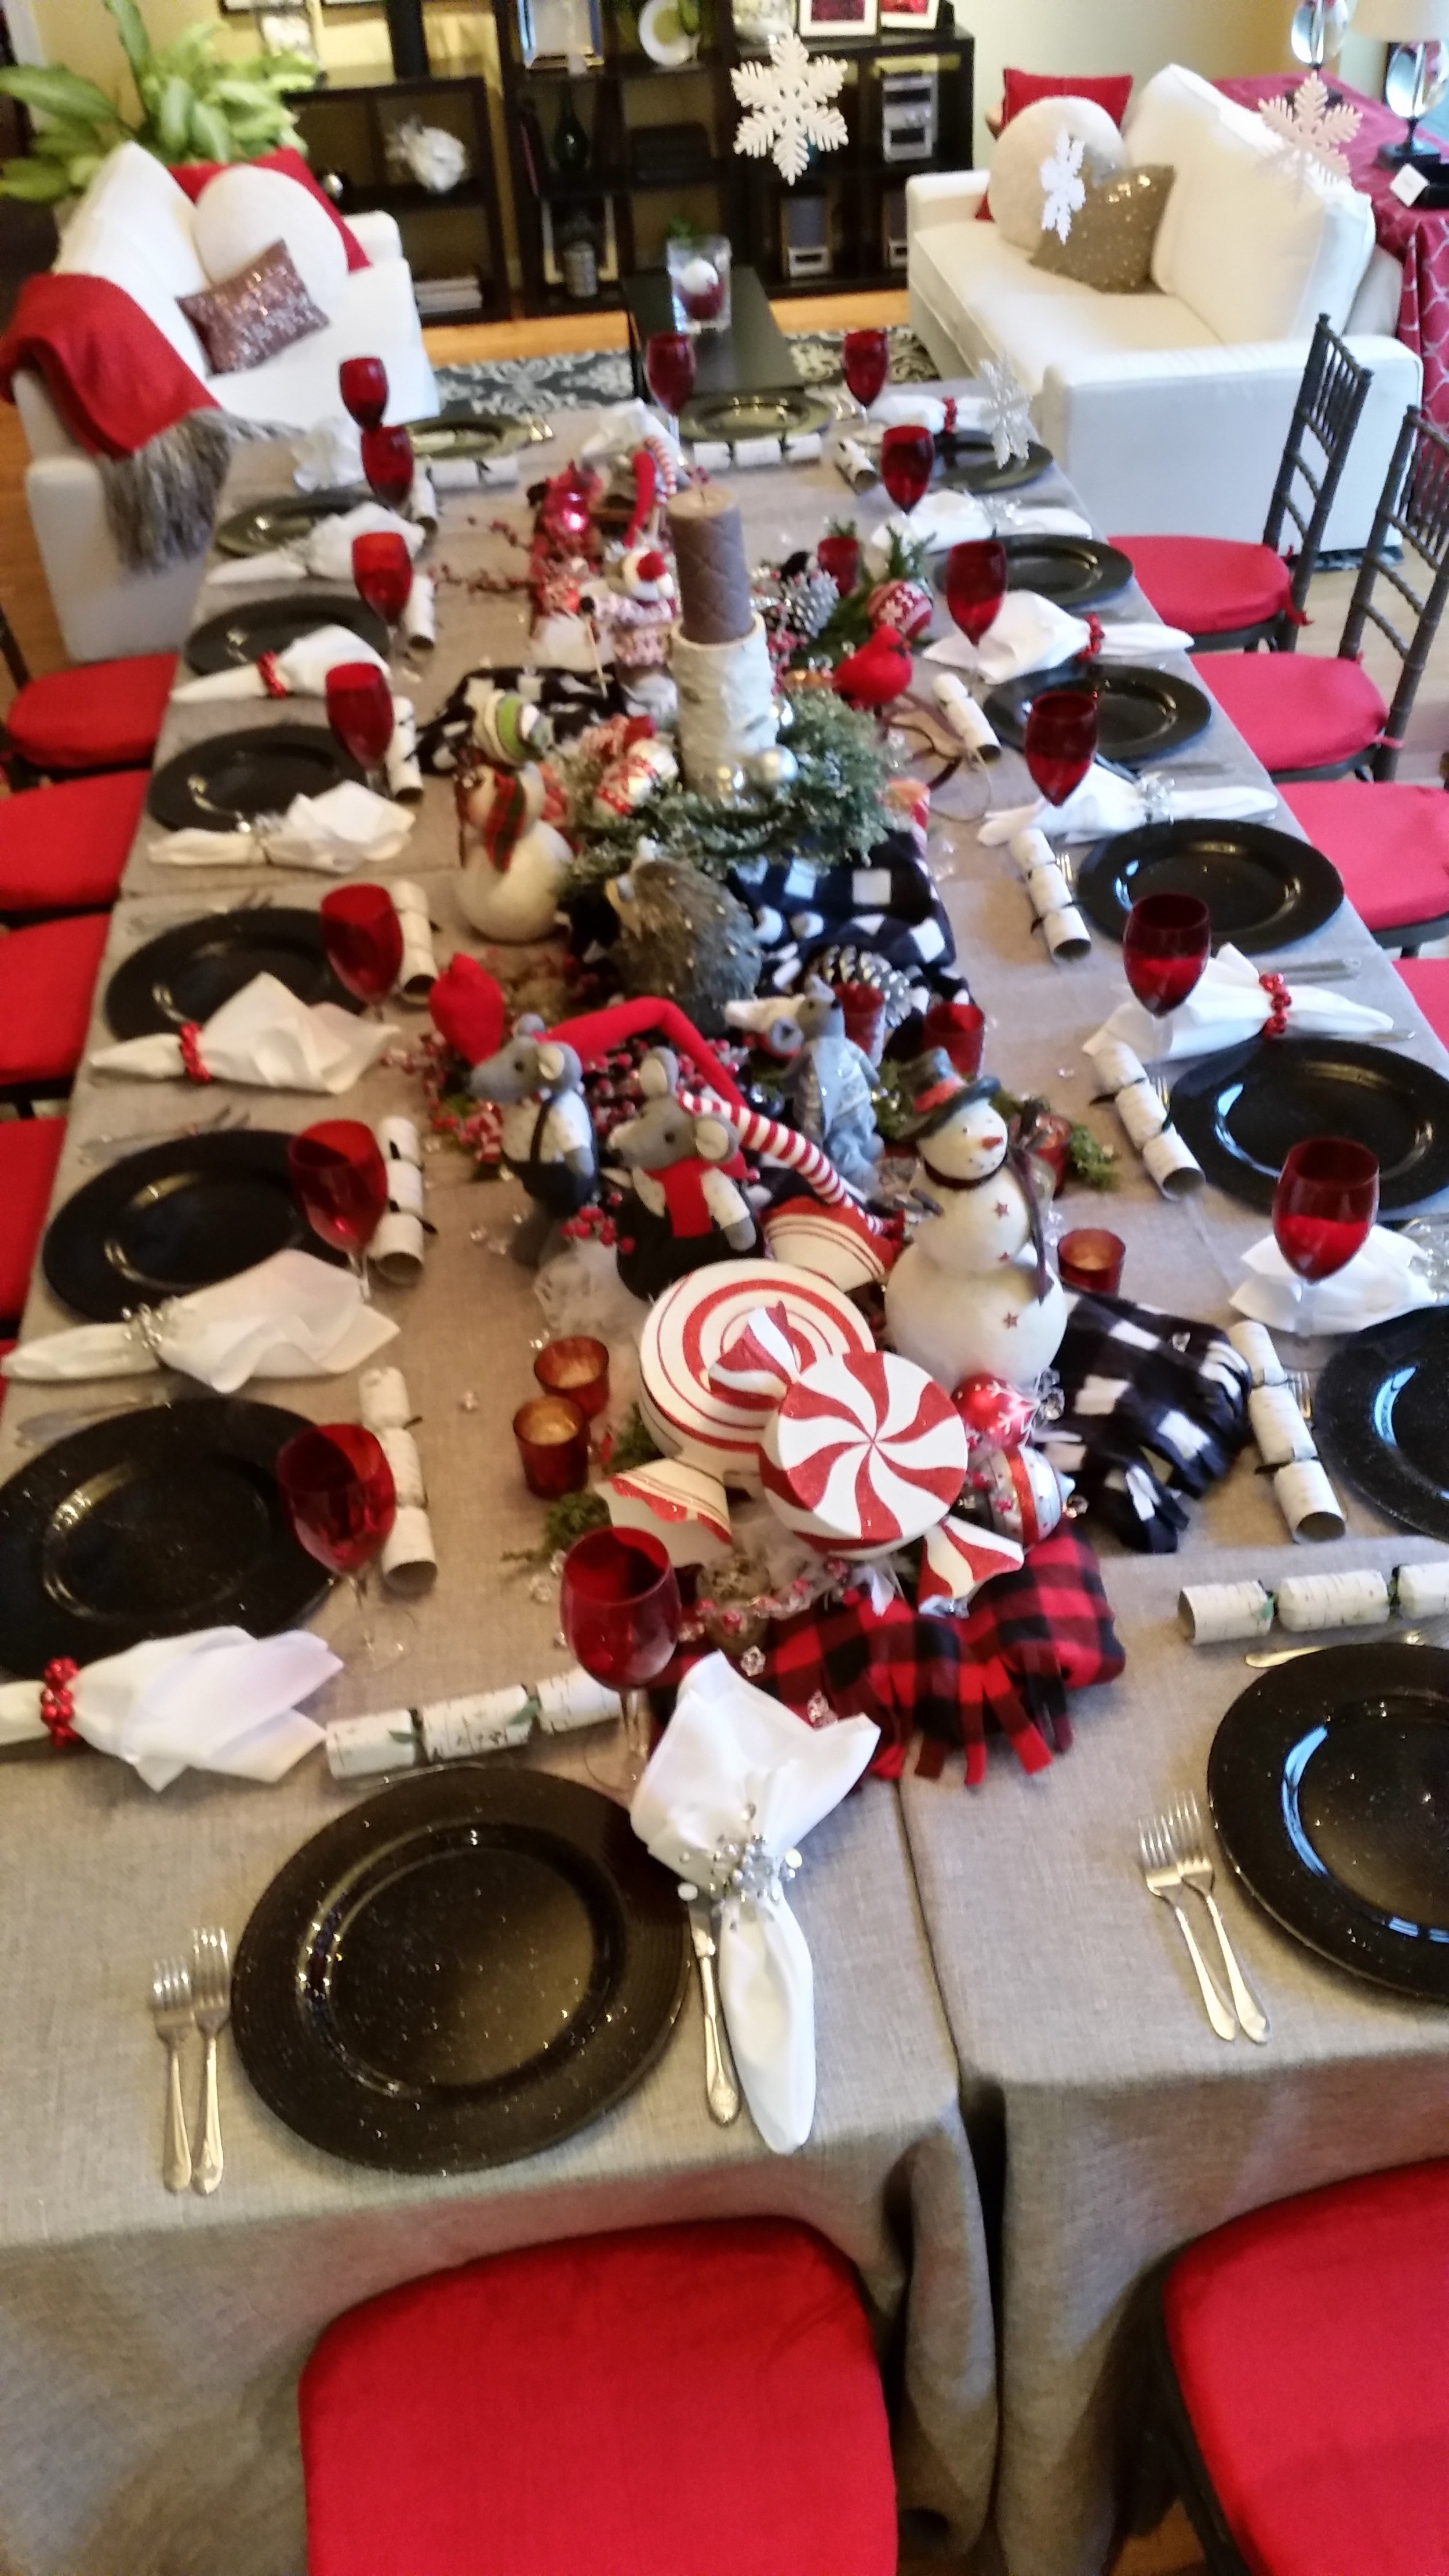 avalon-caterers-avalon's holiday table.jpg